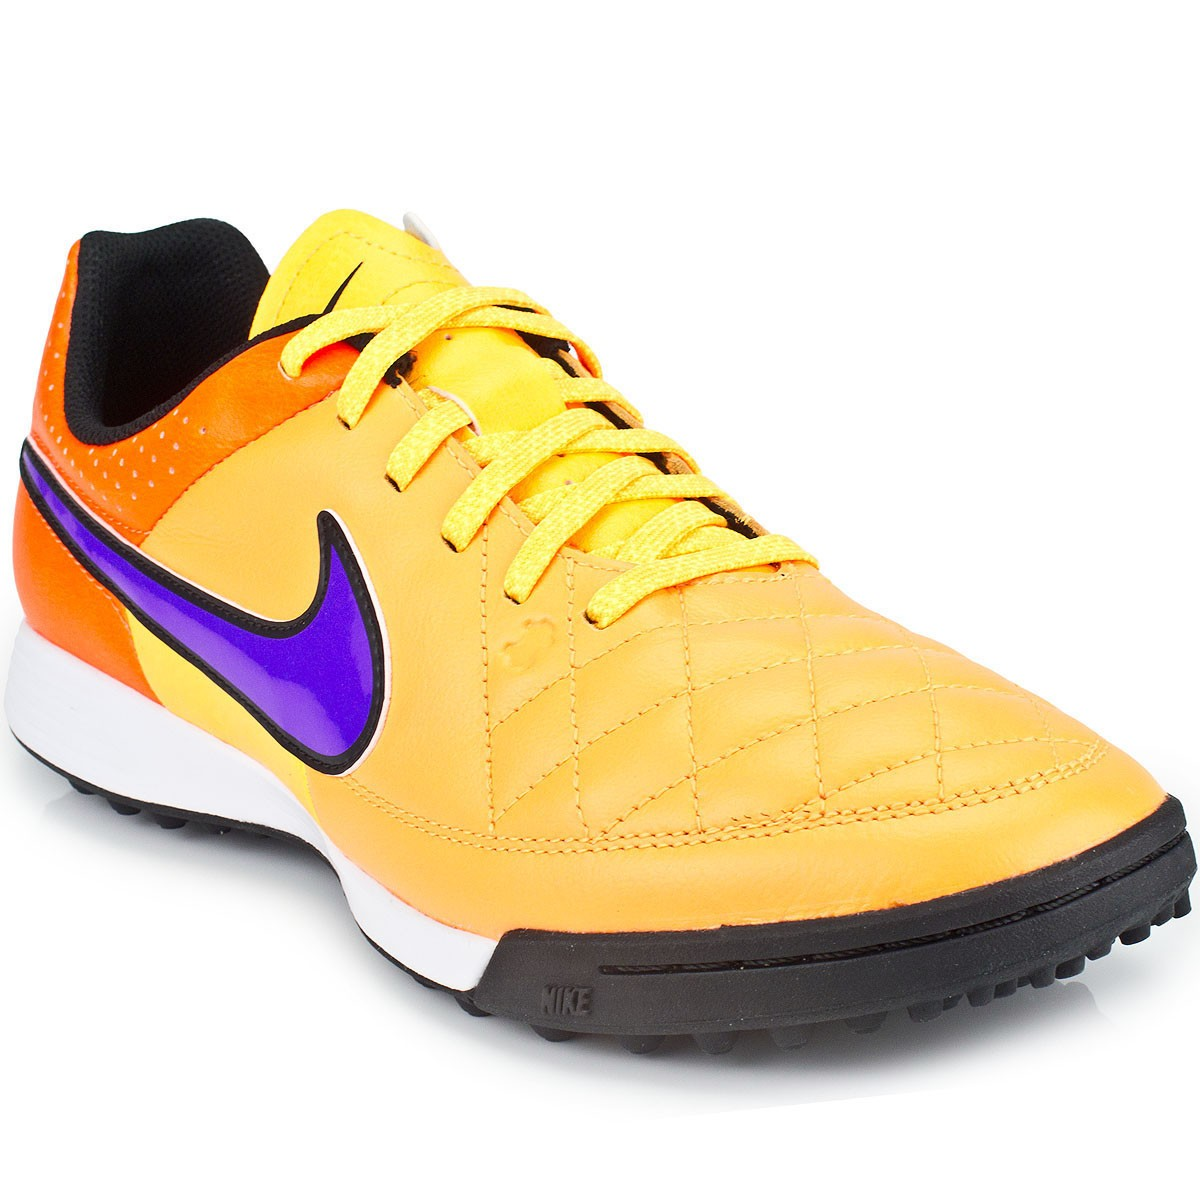 Chuteira Nike Tiempo Genio Leather TF 631284 3c01f7b696de1